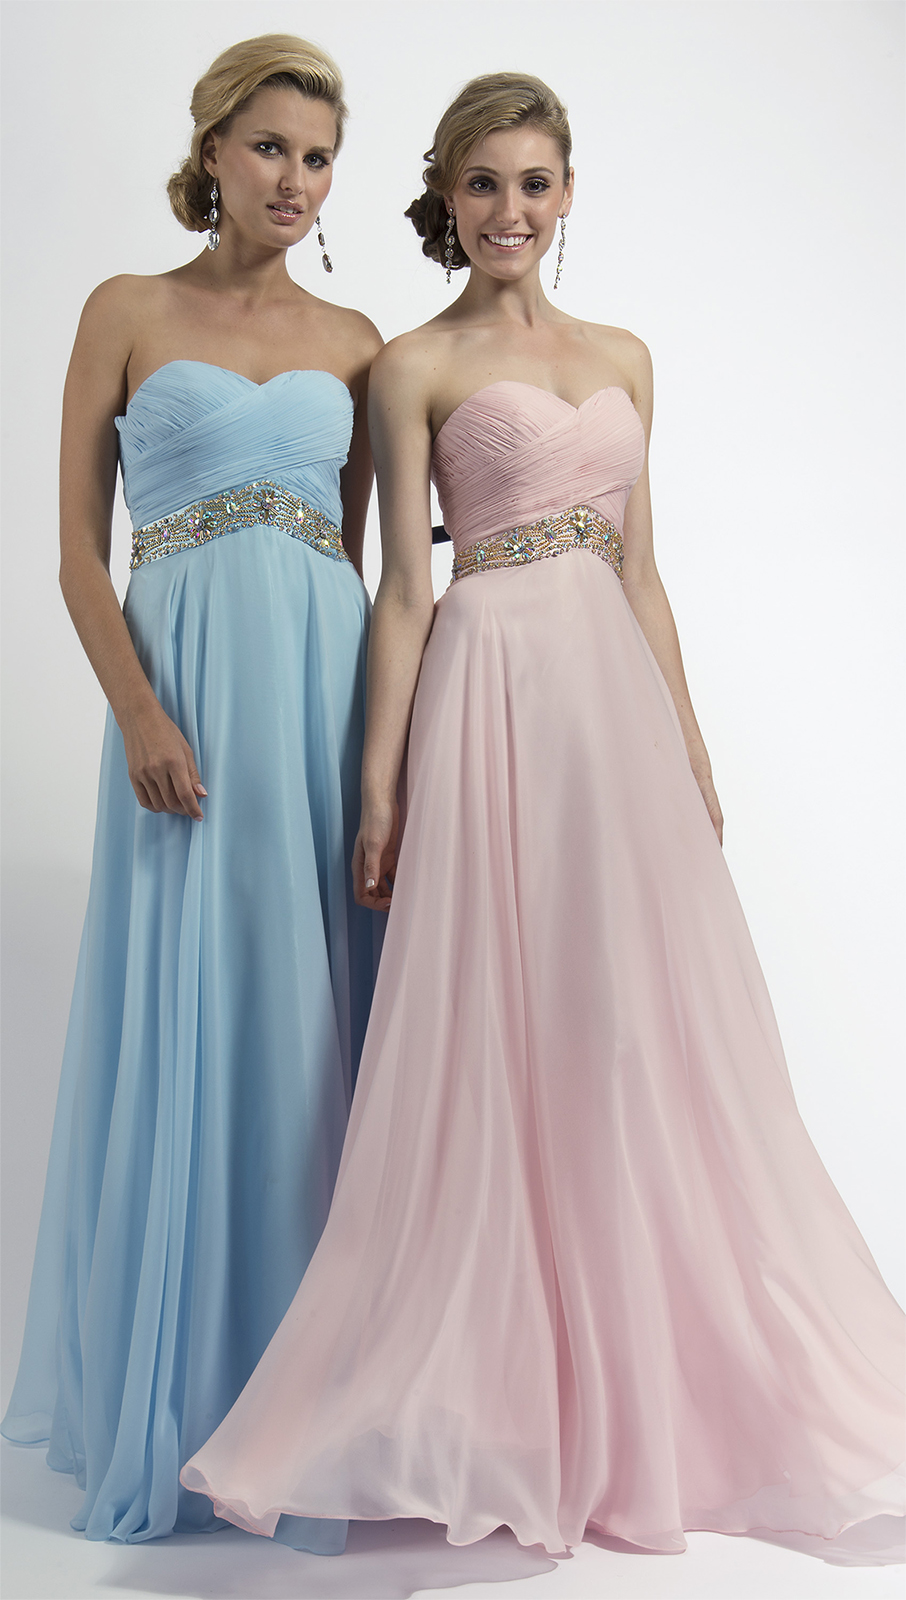 Orange Prom Dresses, Orange Homecoming Gowns | Promgirl.net